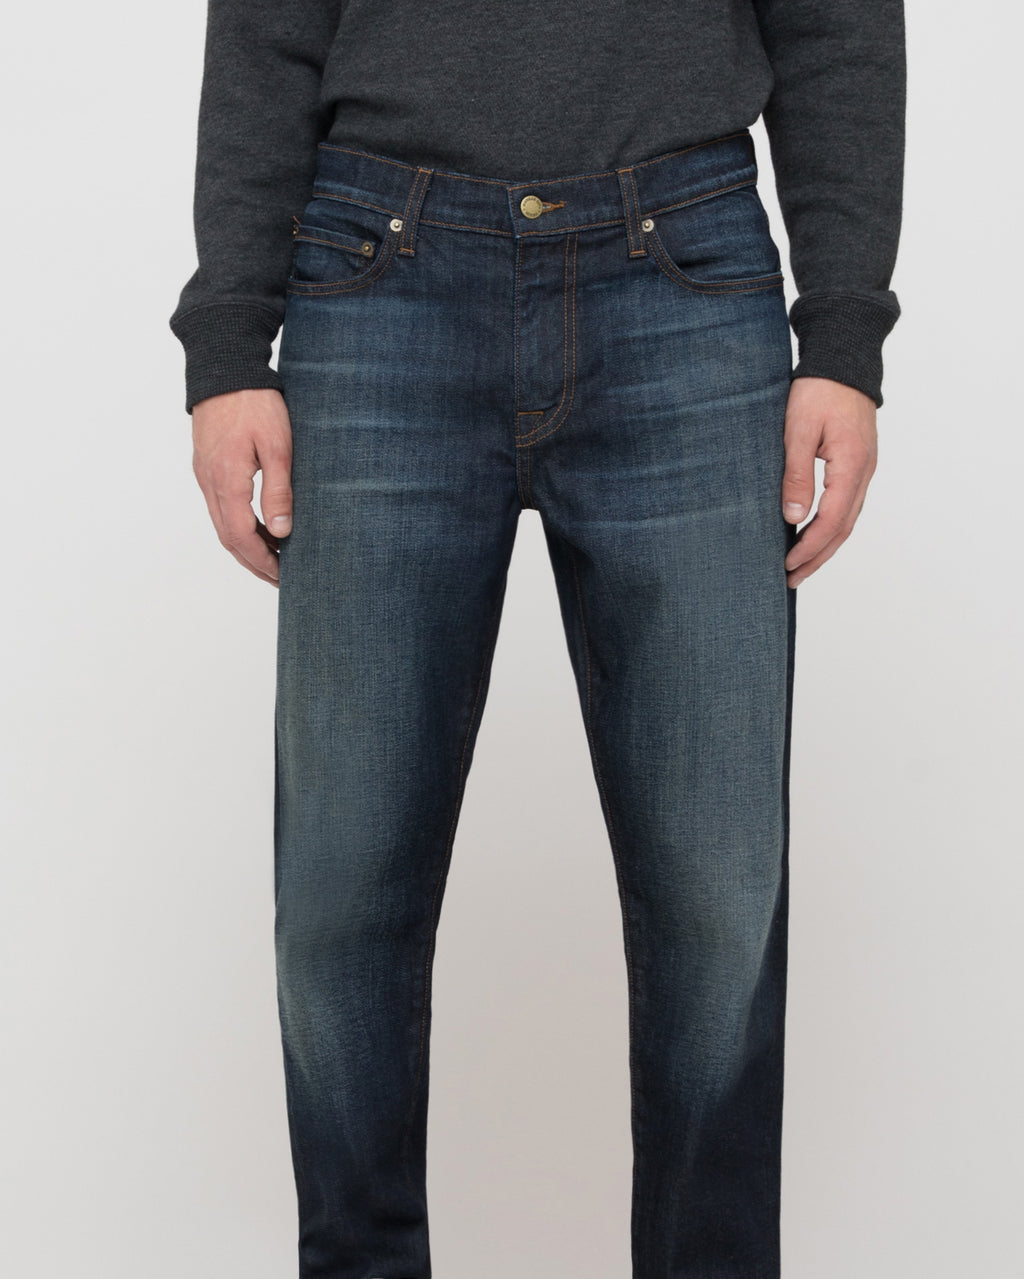 The Brennan Jean in Colton